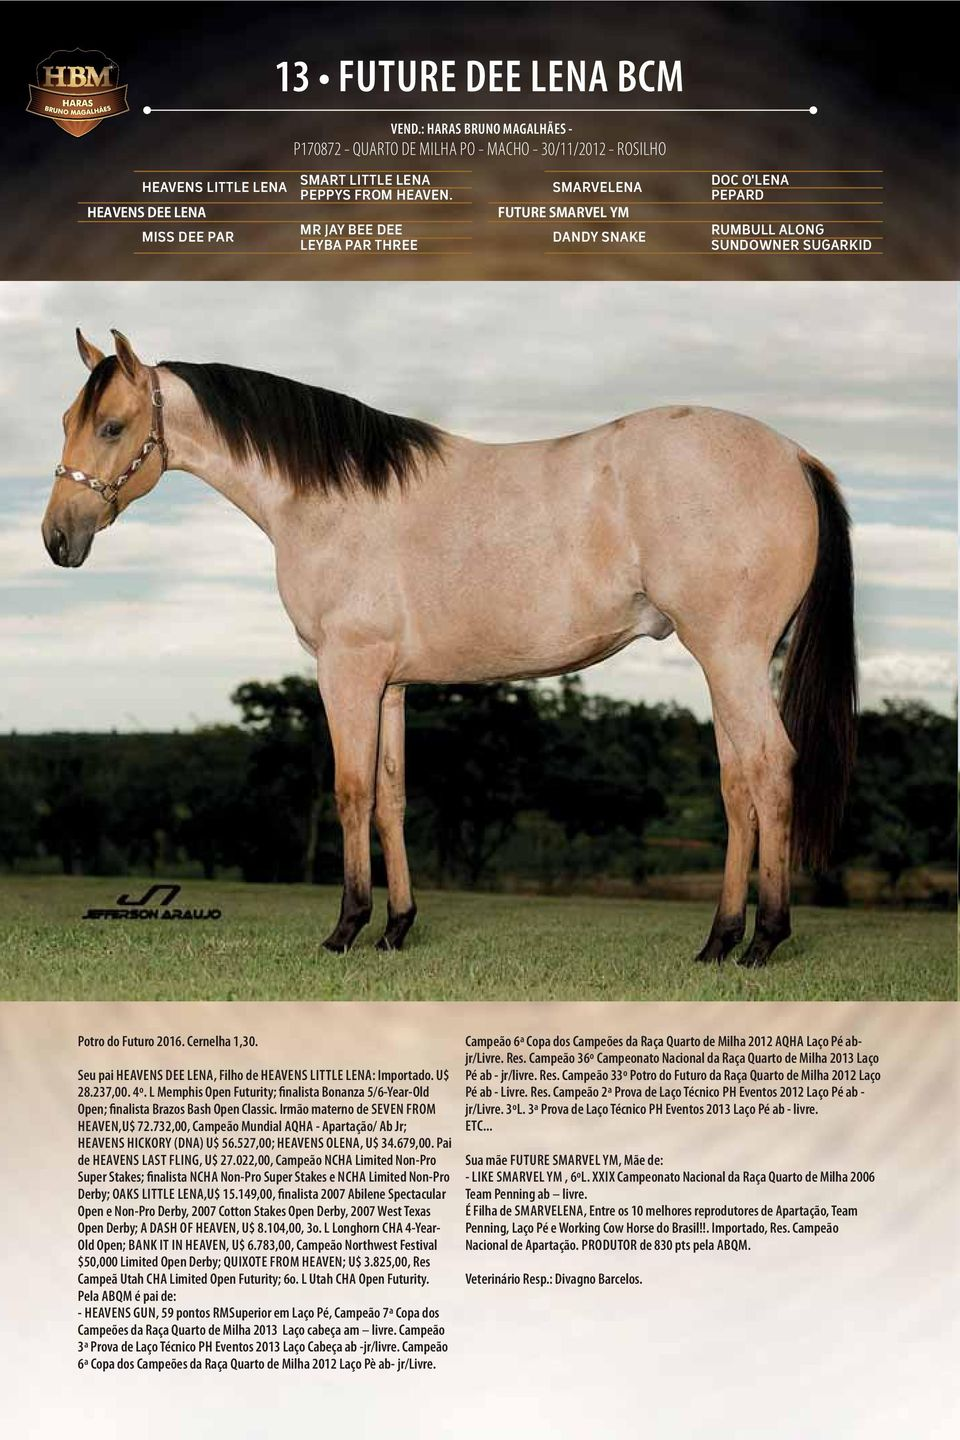 MR JAY BEE DEE LEYBA PAR THREE SMARVELENA FUTURE SMARVEL YM DANDY SNAKE DOC O'LENA PEPARD RUMBULL ALONG SUNDOWNER SUGARKID Potro do Futuro 2016. Cernelha 1,30.